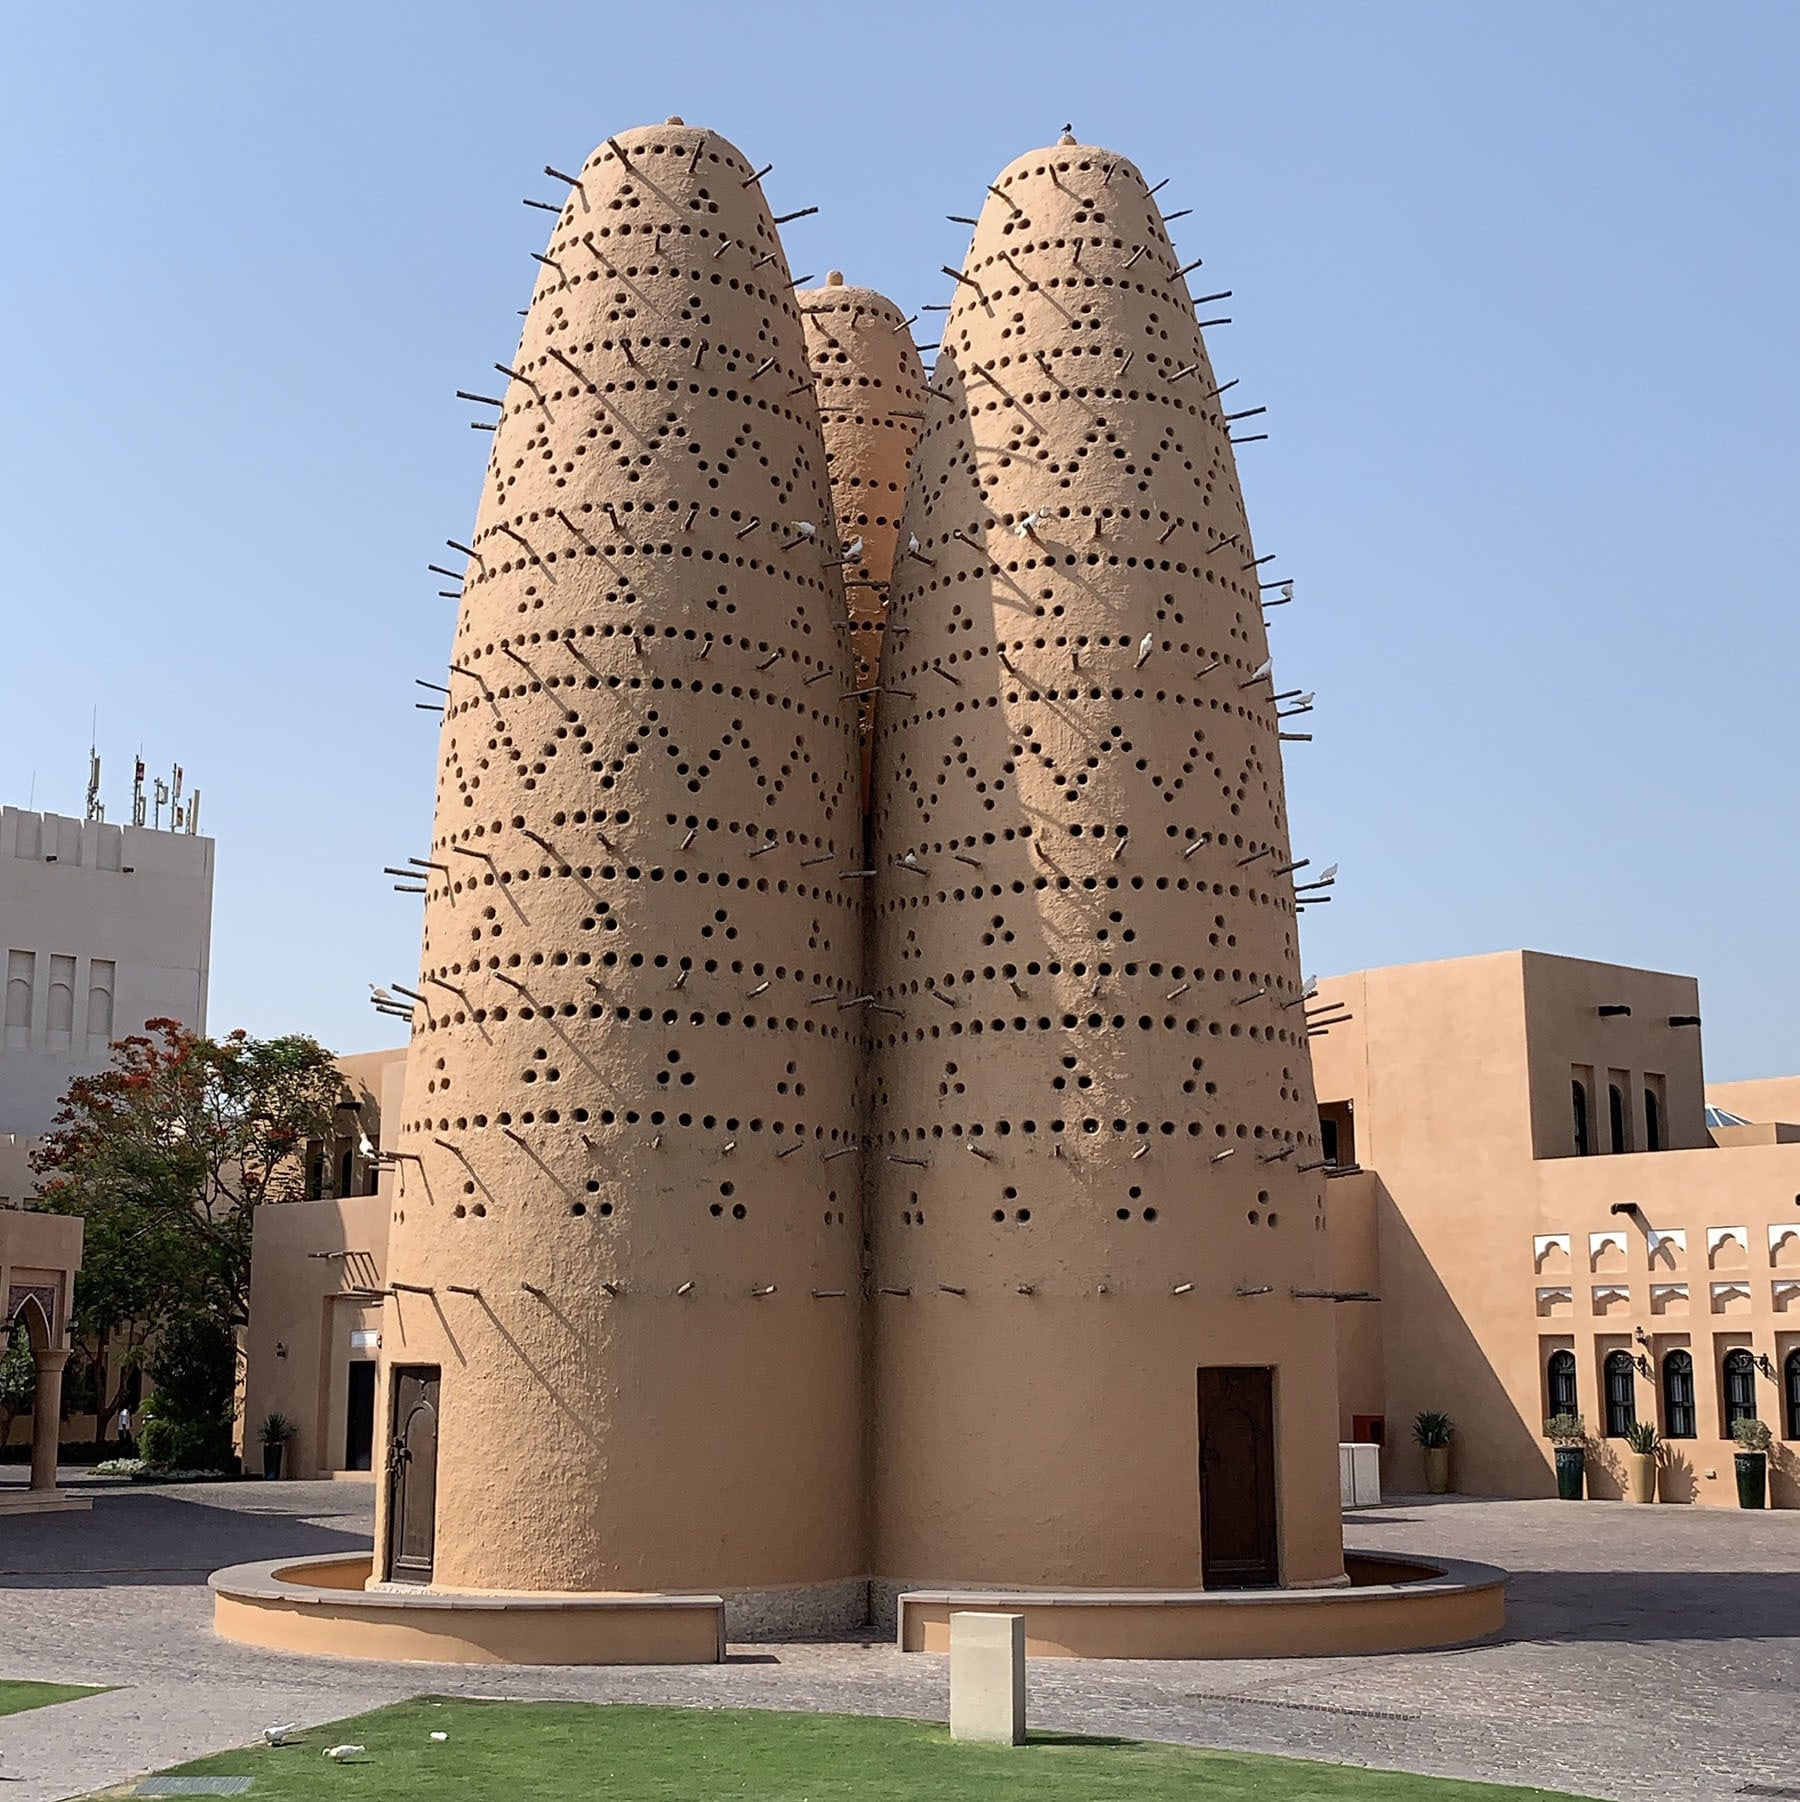 Pigeon Towers, designed to collect pigeon droppings that were used as a fertiliser for farming, at the Katara Cultural Village.